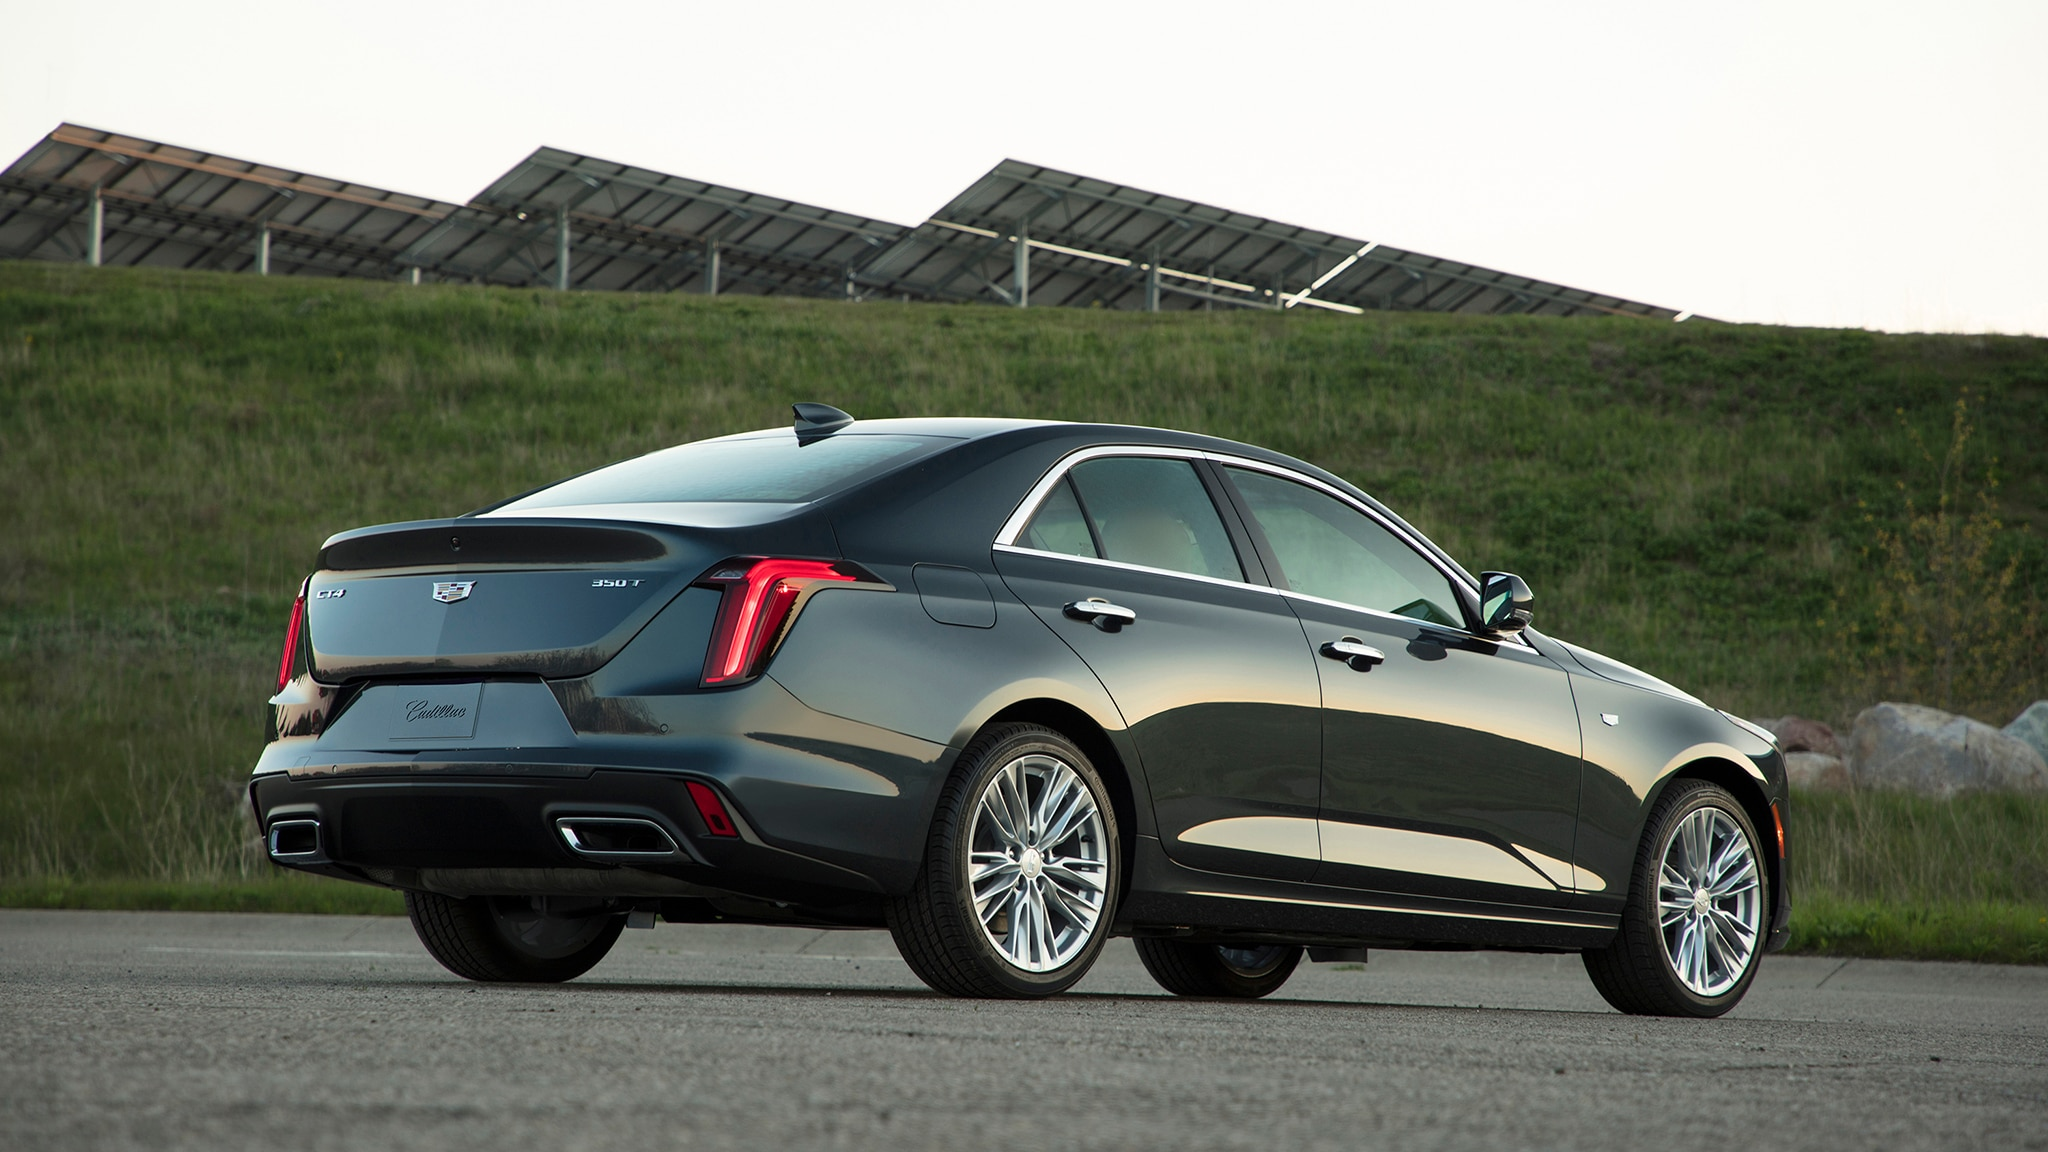 2020 cadillac ct4 the regular ol' nonv models are here